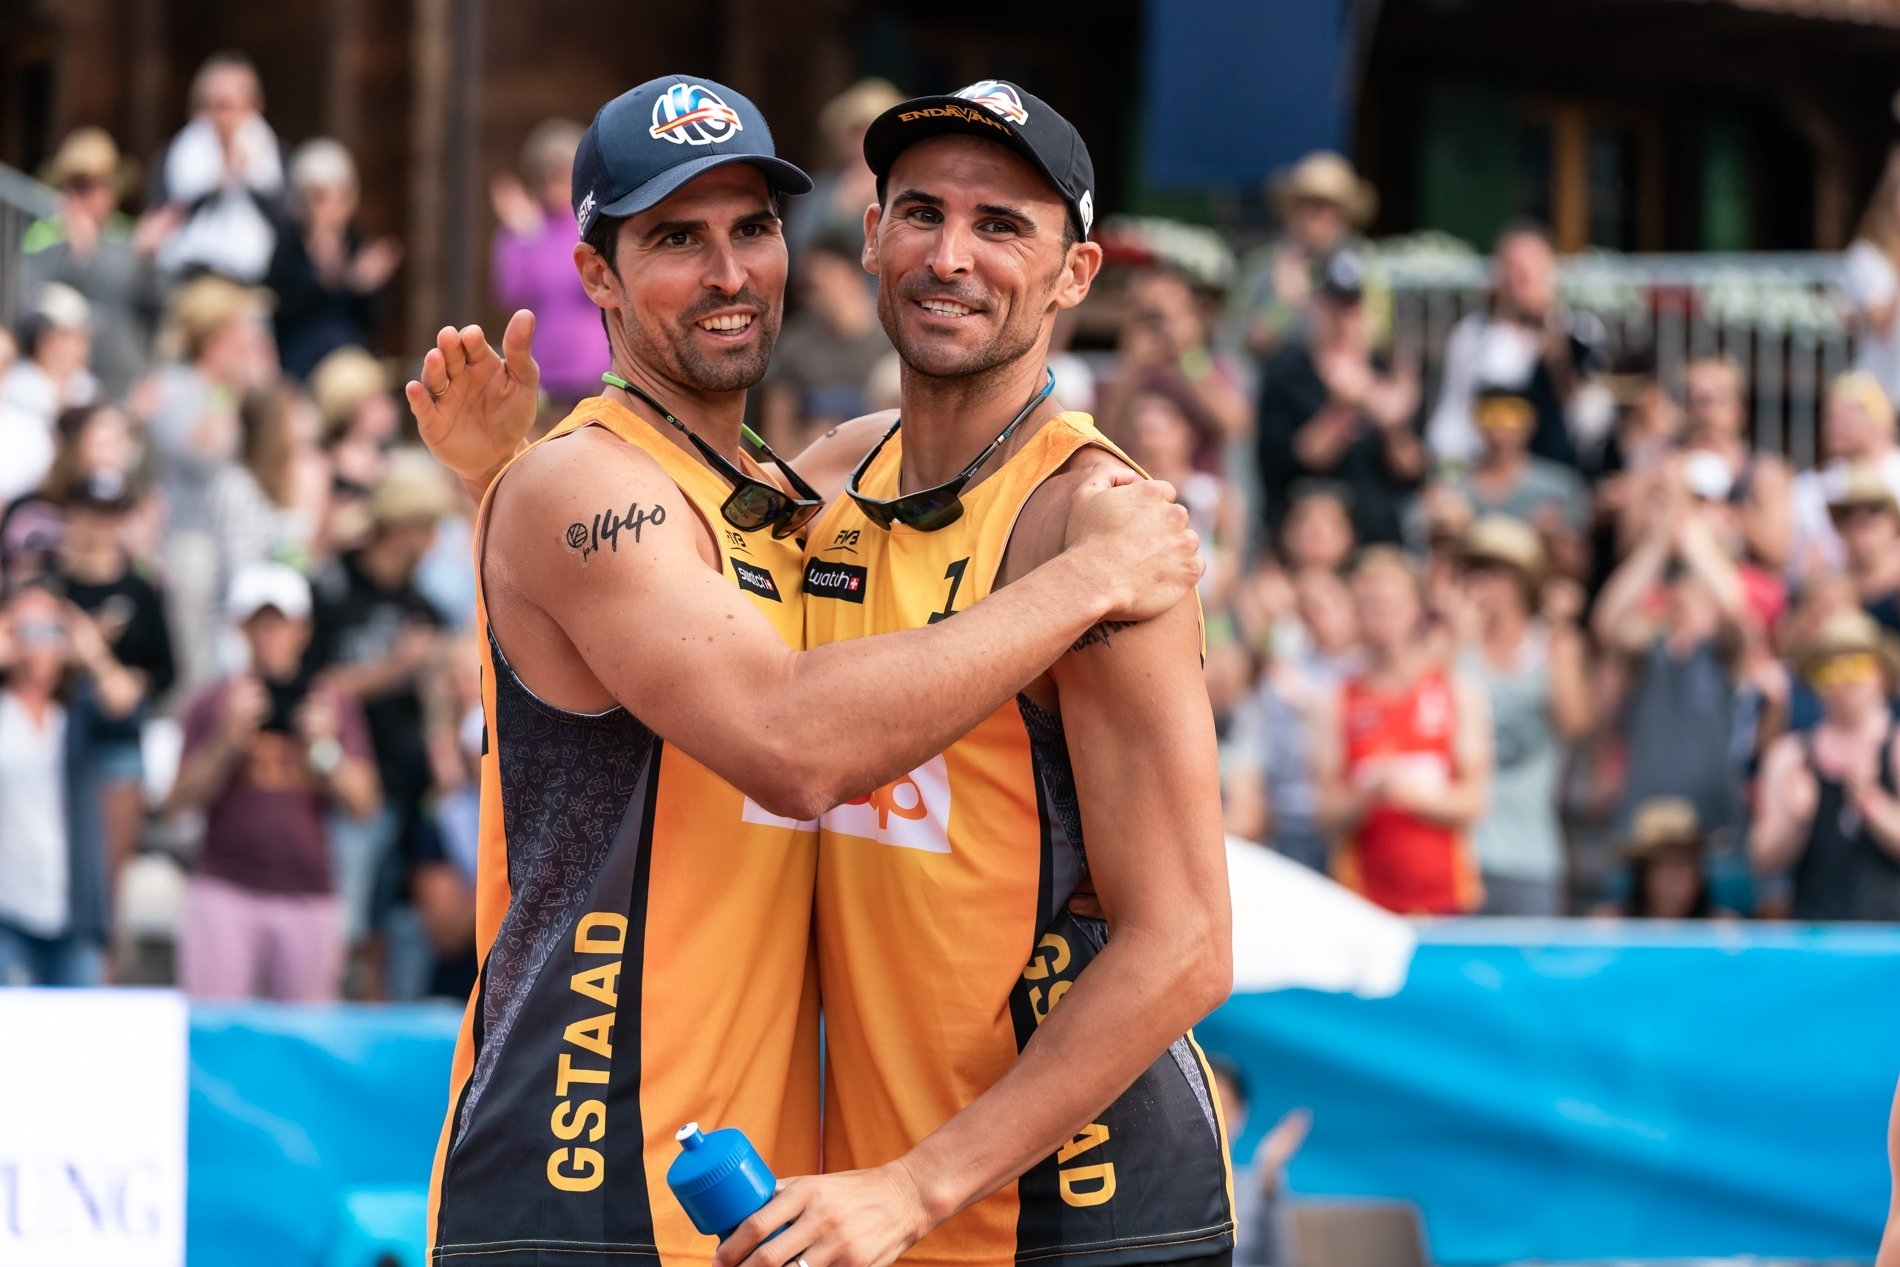 'Brothers' Herrera/Gavira are all smiles despite their losing the final